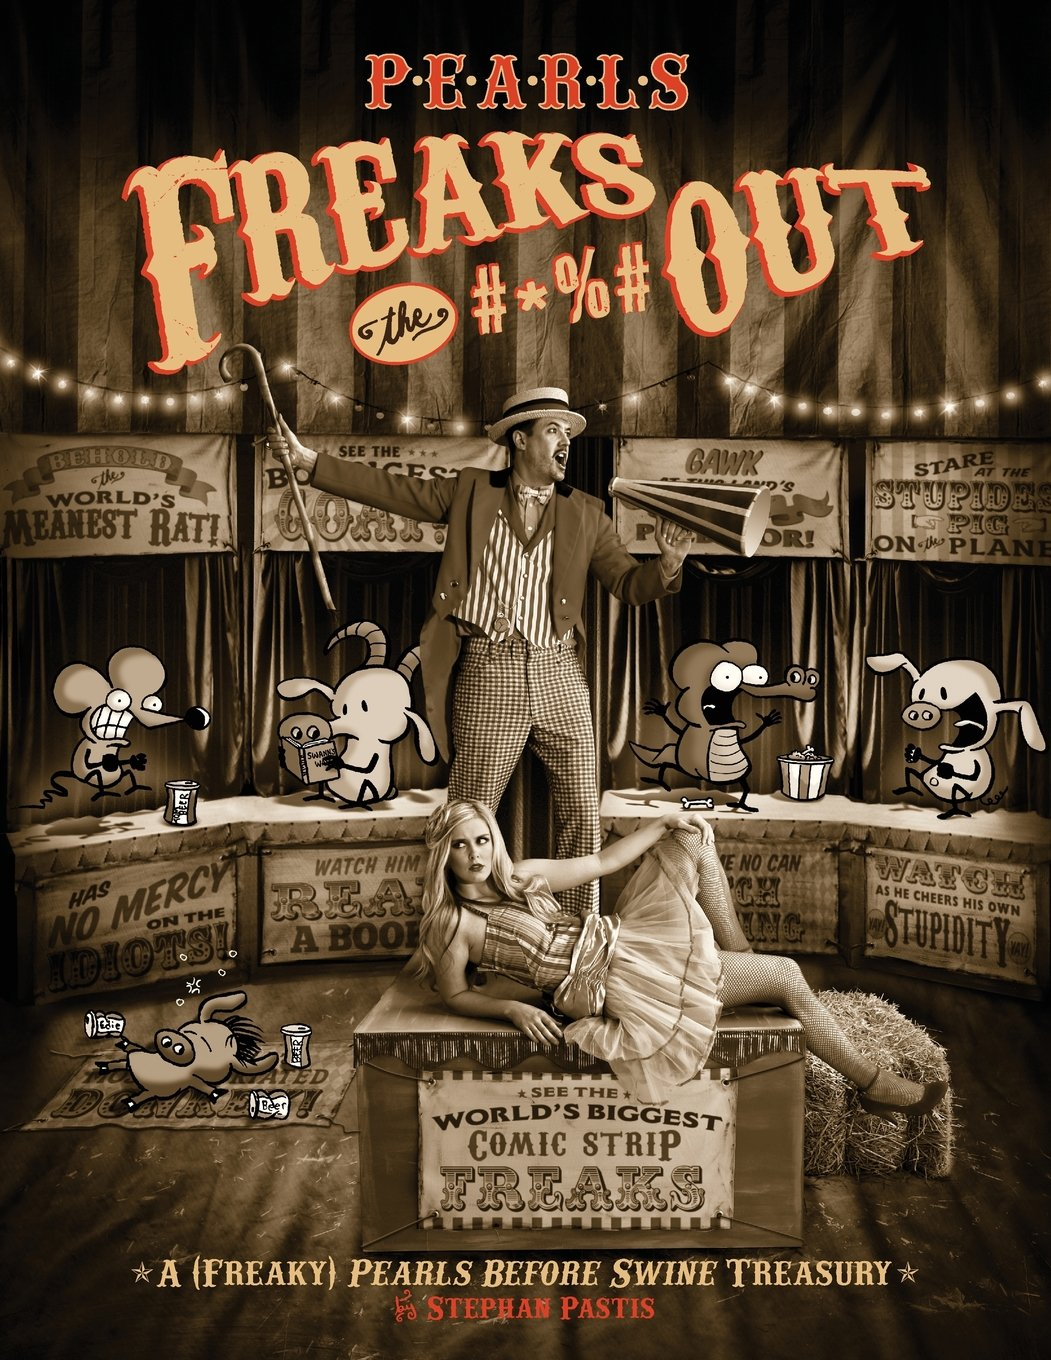 Download Pearls Freaks the #*%# Out: A (Freaky) Pearls Before Swine Treasury pdf epub